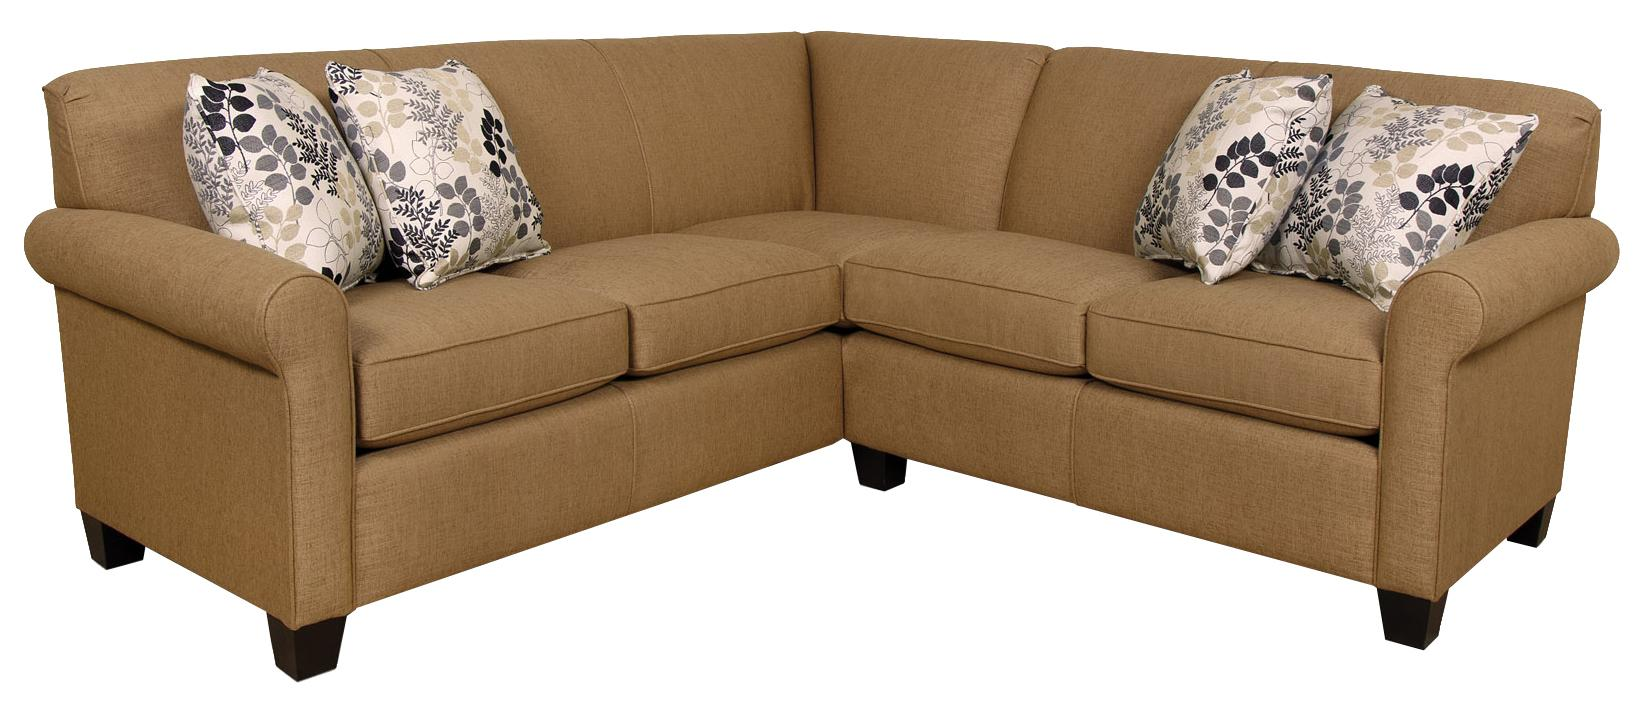 England Angie Small Corner Sectional Sofa - AHFA - Sofa Sectional Dealer Locator  sc 1 st  Furniture Dealer Locator - Find your furniture : england sectionals - Sectionals, Sofas & Couches